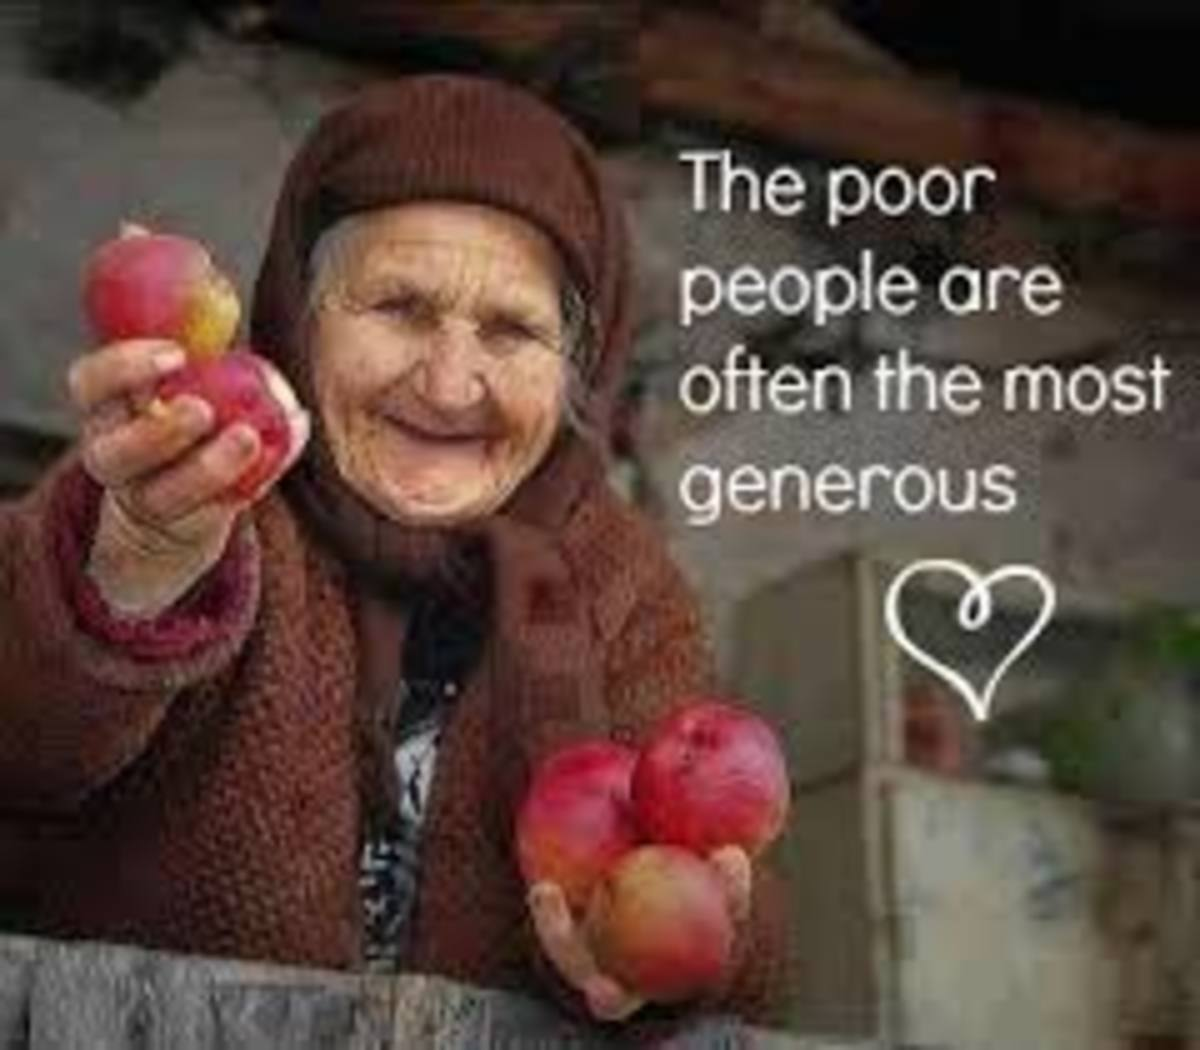 The Poor: The Excellent Giver